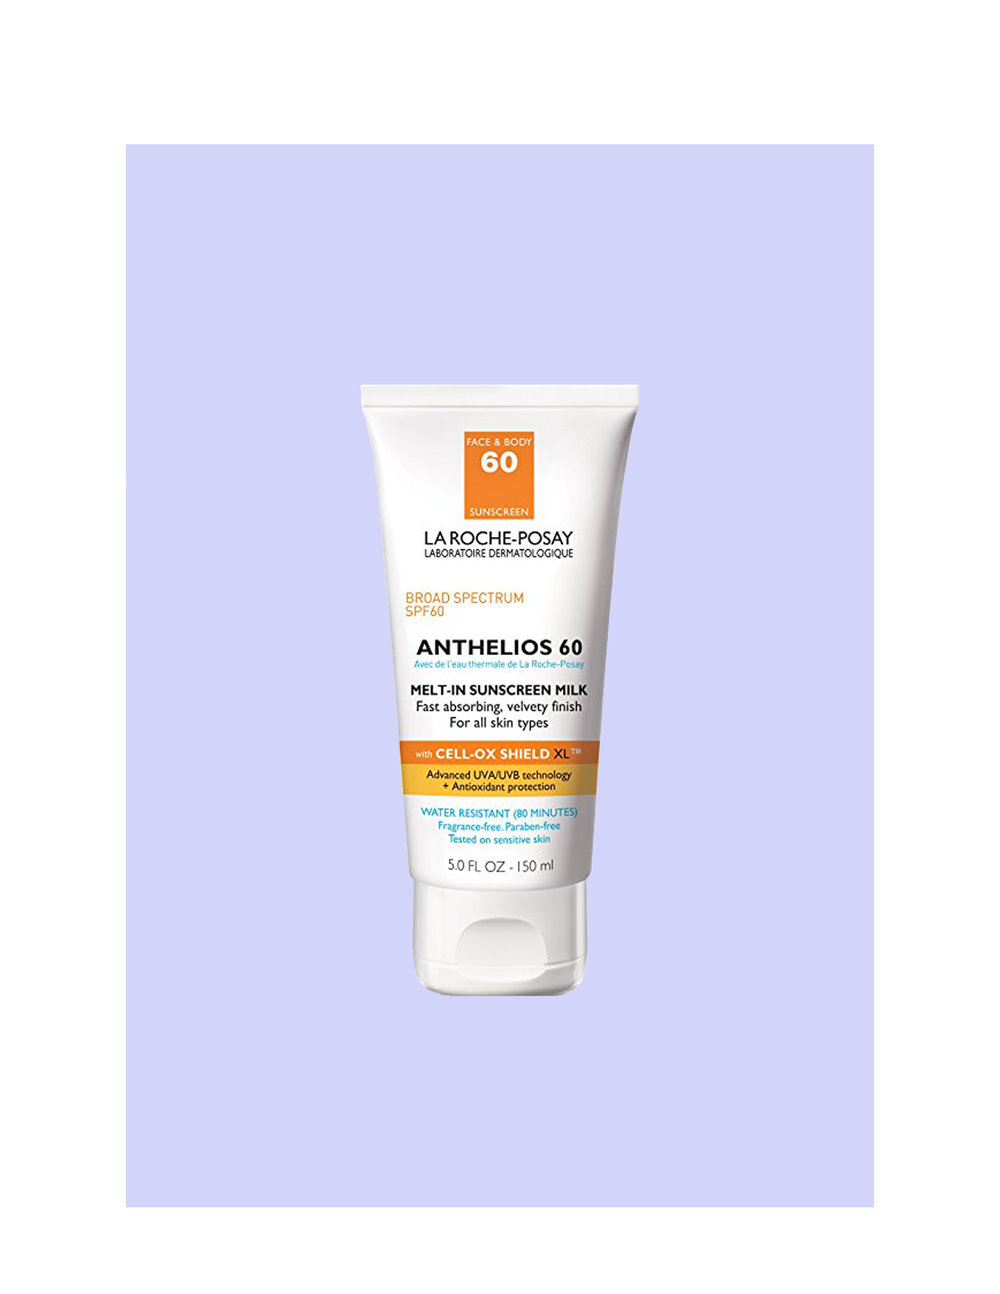 Recommended by: Syndee   Skin Type: Normal  SPF: 60 - Overall Thoughts: